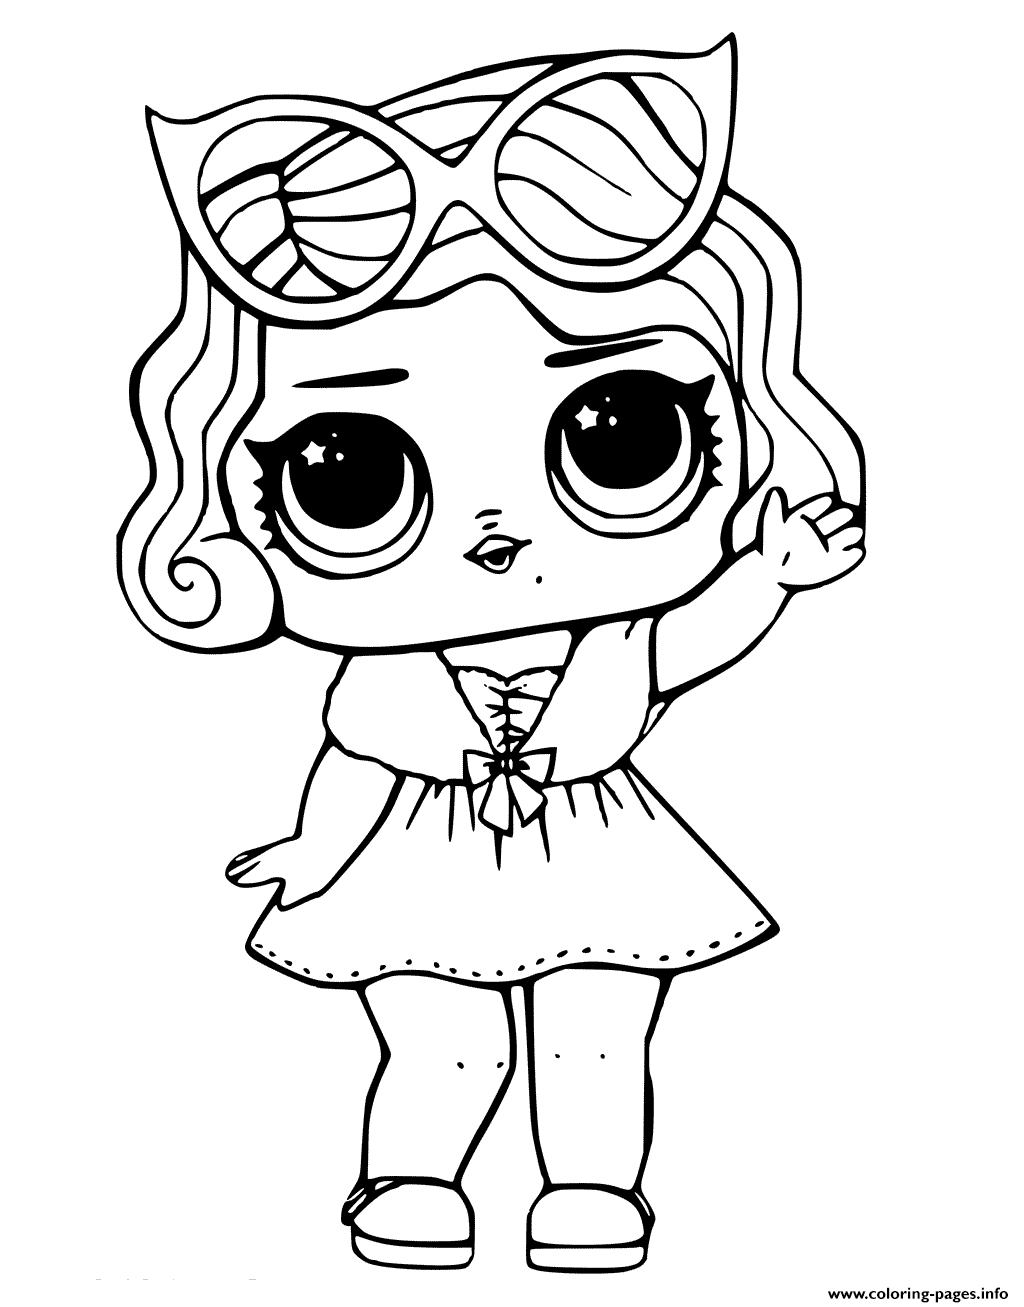 Leading Baby From Lol Surprise Coloring Pages Printable